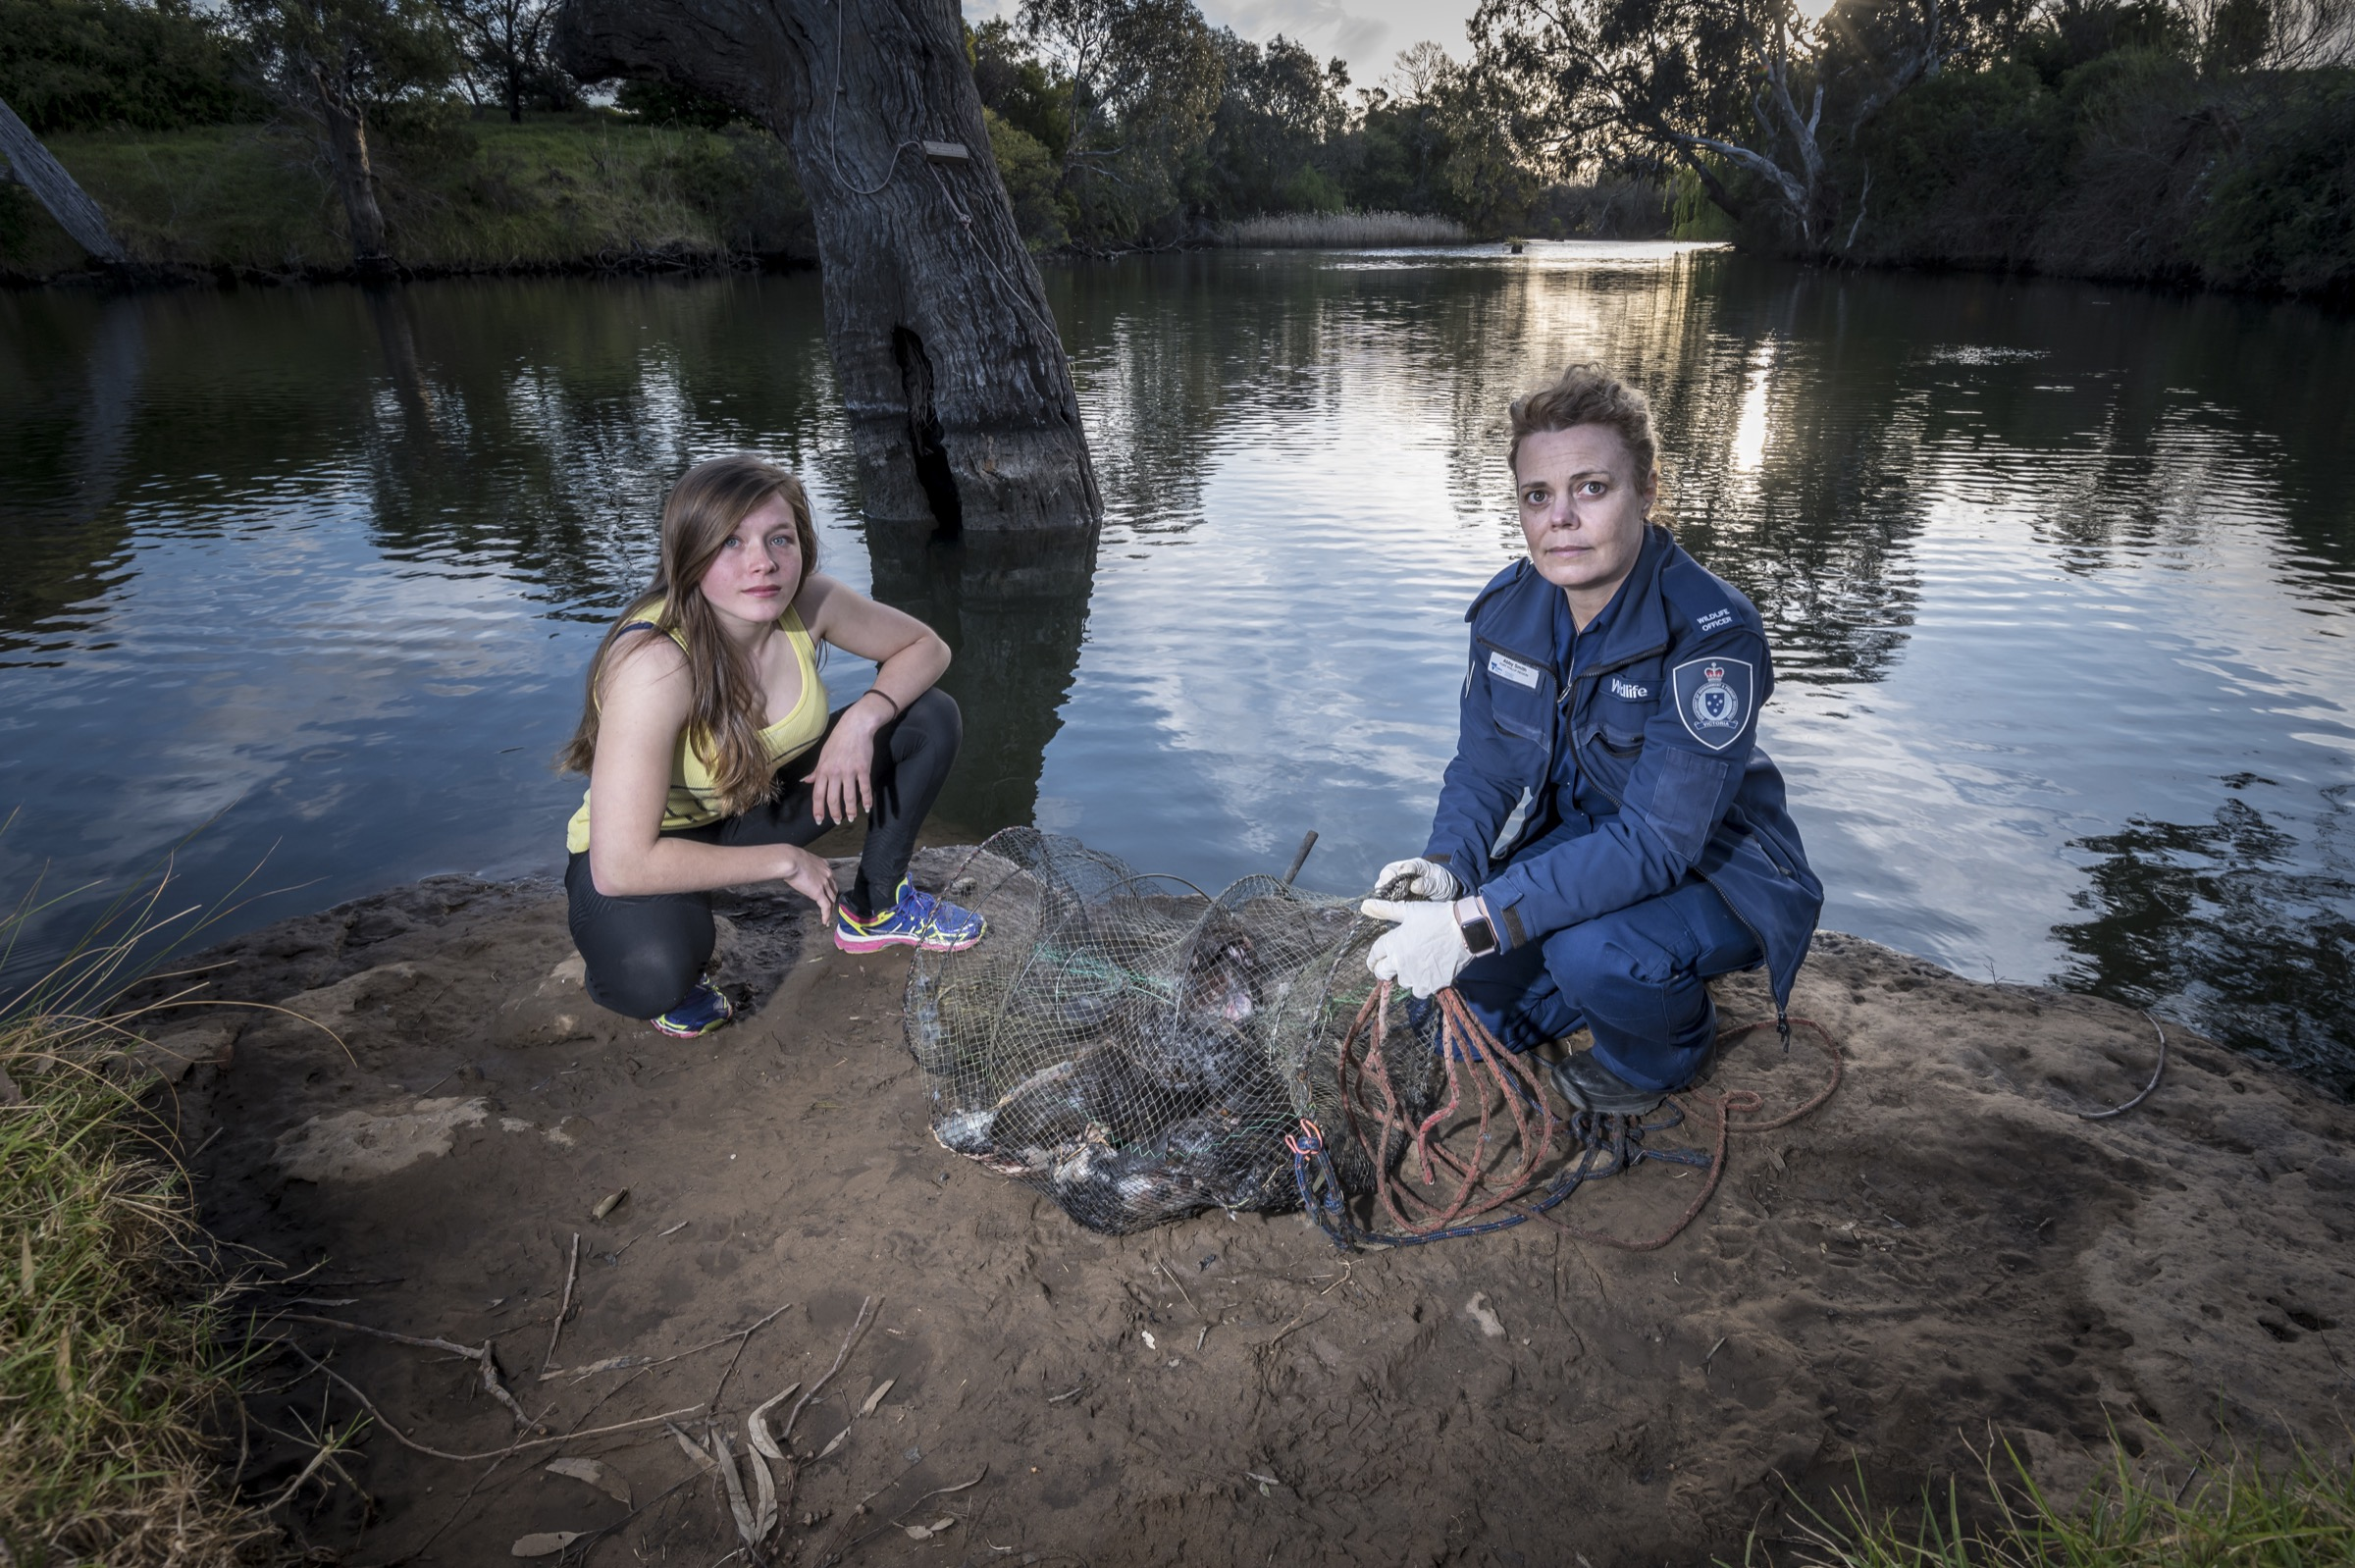 Crab traps called opera house traps pose a significant threat to foraging platypuses. A wildlife officer shows one such trap that contained the bodies of five drowned animals.